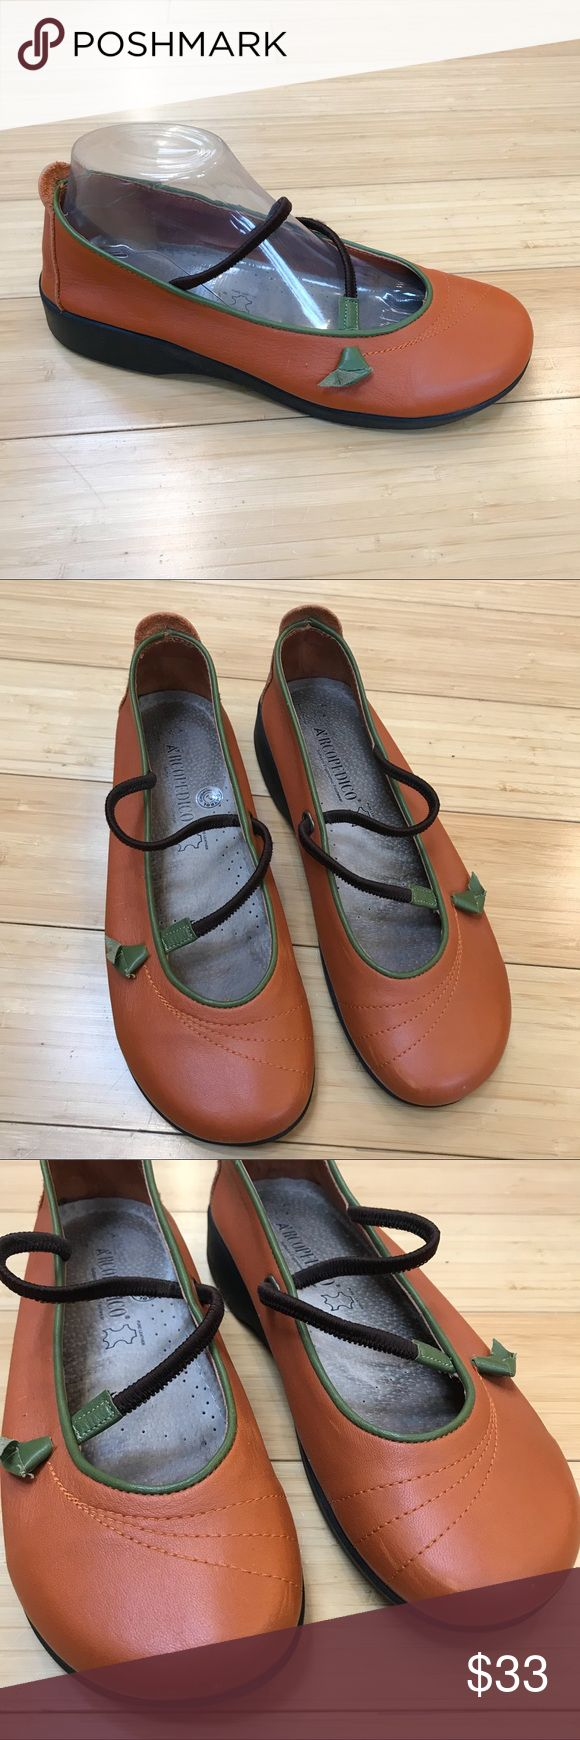 Arcopedico soft leather mary-jane style flats, 39. Beautiful pair of soft burnt orange and green flats by Arcopedico, size 39. I feel these best fit a size 8.5, and I am listing them as such. Elastic tops, small tie on the side that resembles a leaf. Shoes are in excellent condition, save one small scuff on the left toe. Bottoms are great, inside foot bed is dirty looking from wear. Outsides are soft and show almost no wear. Really nice! Arcopedico Shoes Flats & Loafers